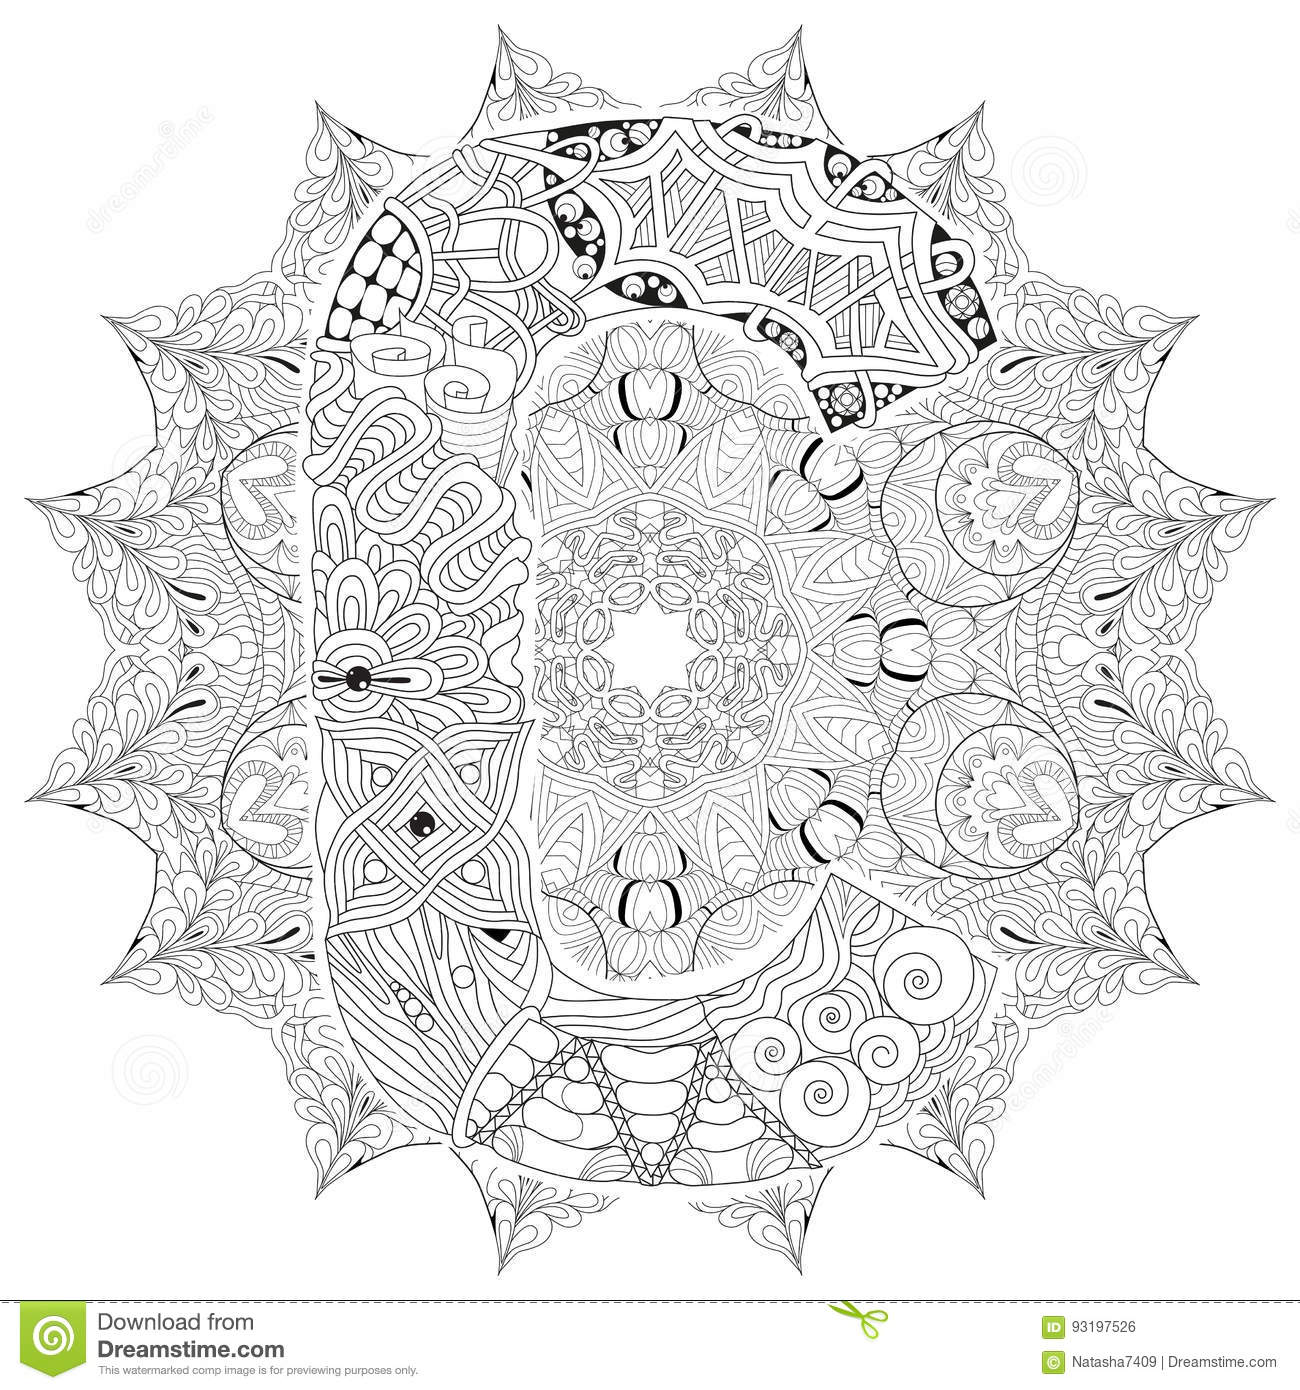 Mandala Con La Letra C Para Colorear Zentangle Decorativo Del Vector